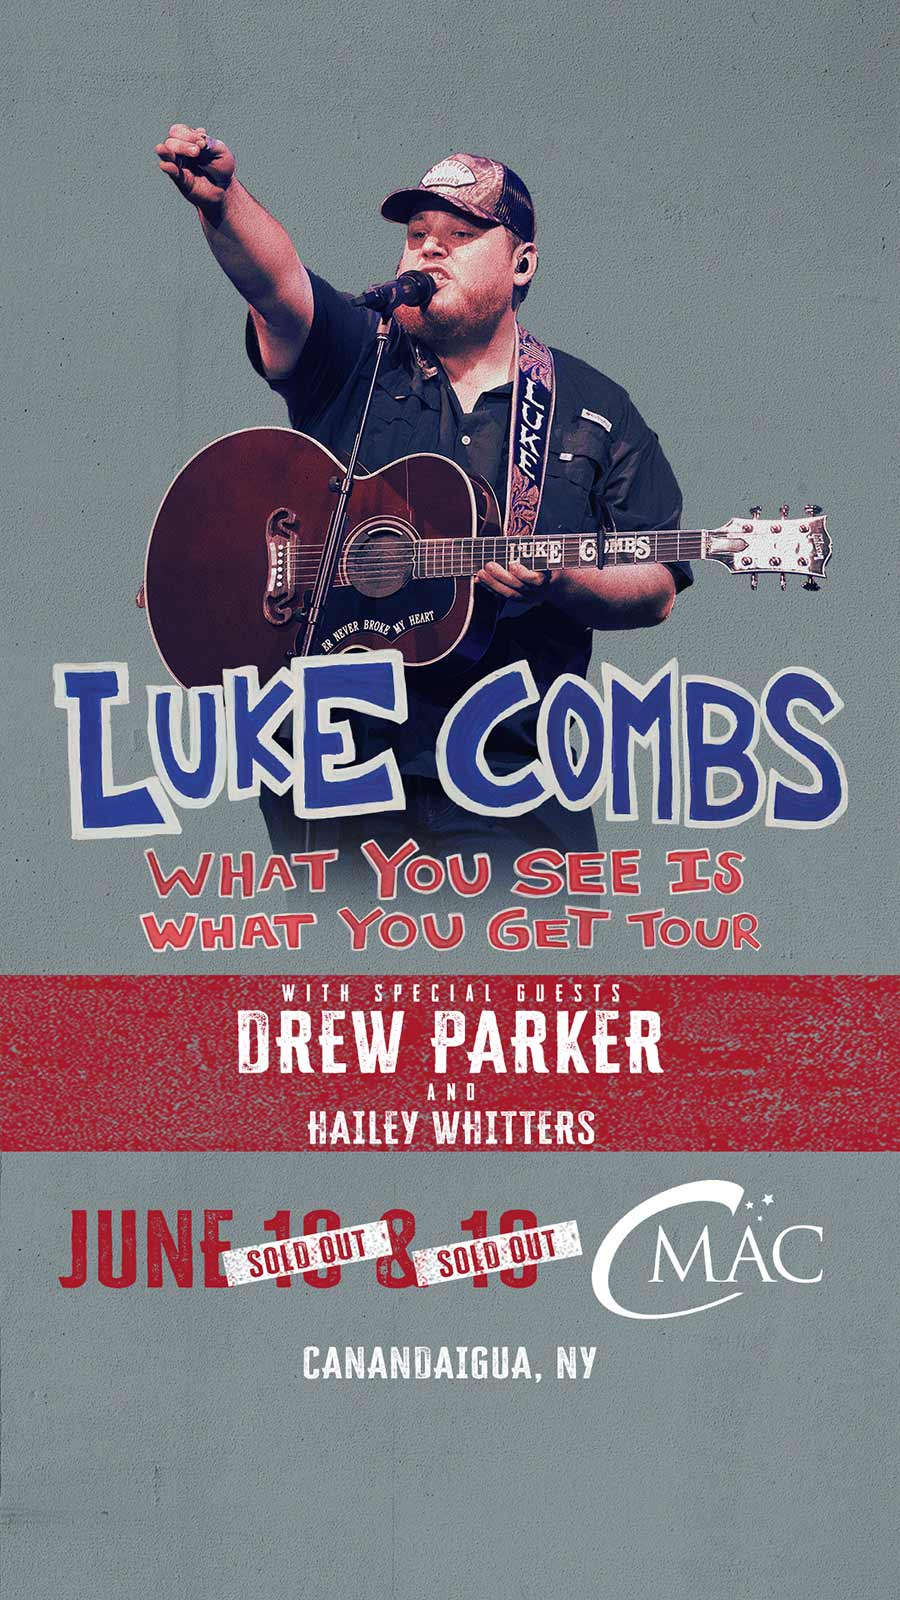 Luke Combs show announcement